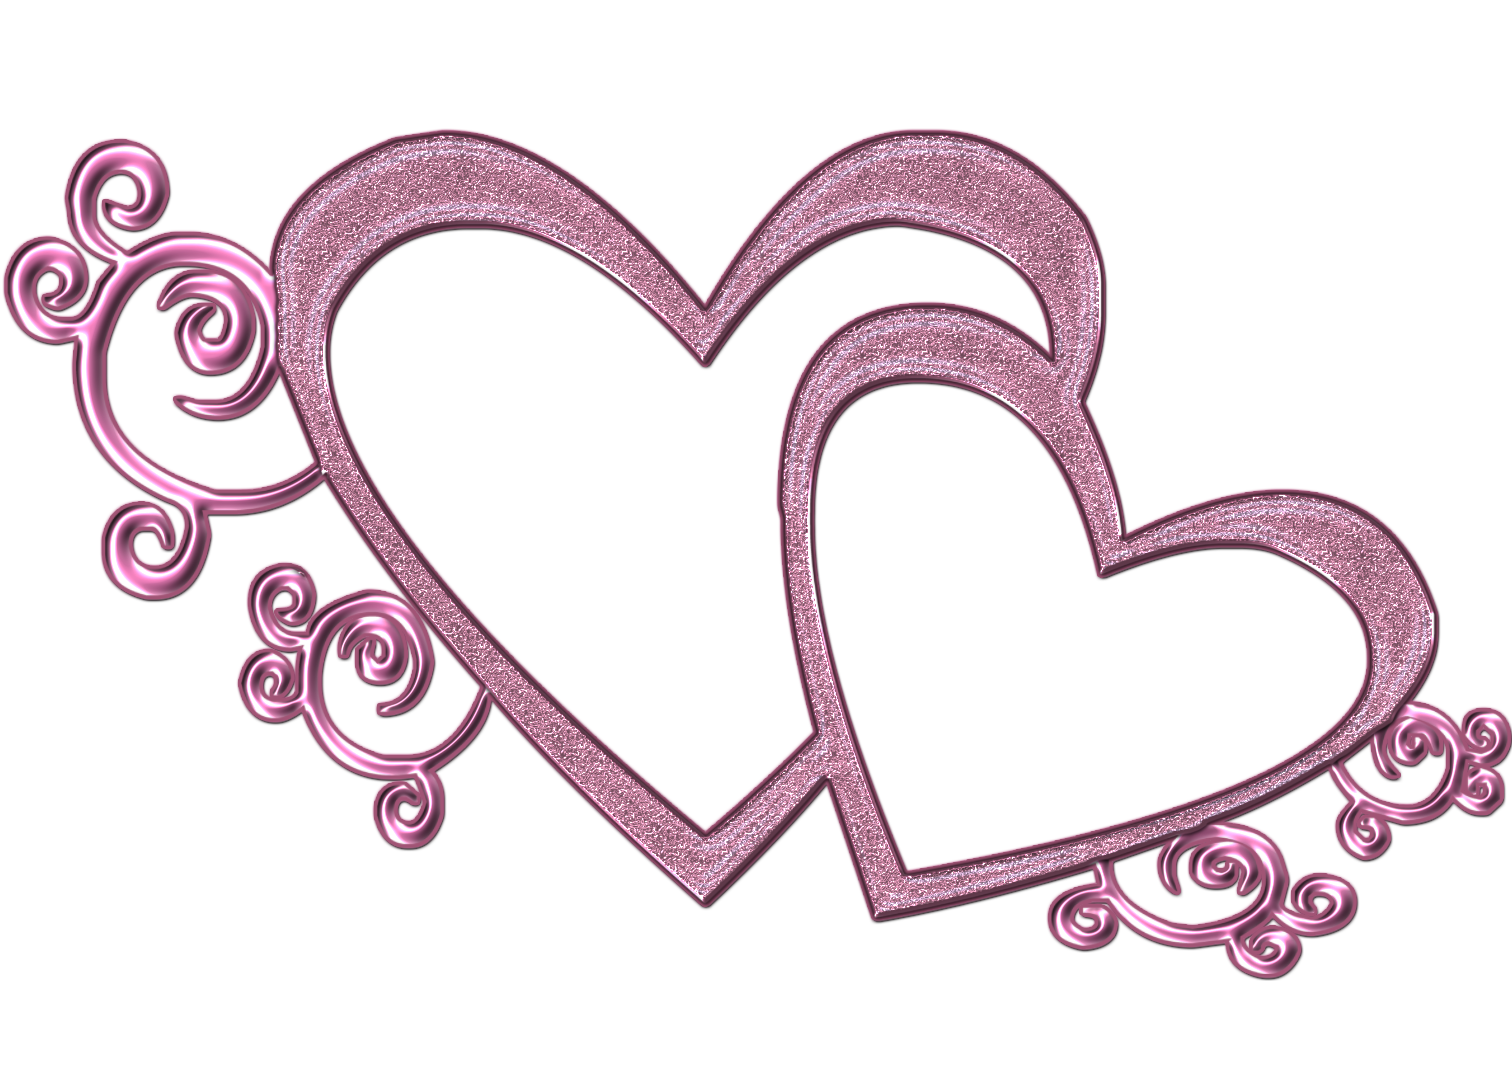 Double Free Wedding Heart Clipart Pink D-Double Free Wedding Heart Clipart Pink Double Heart-3